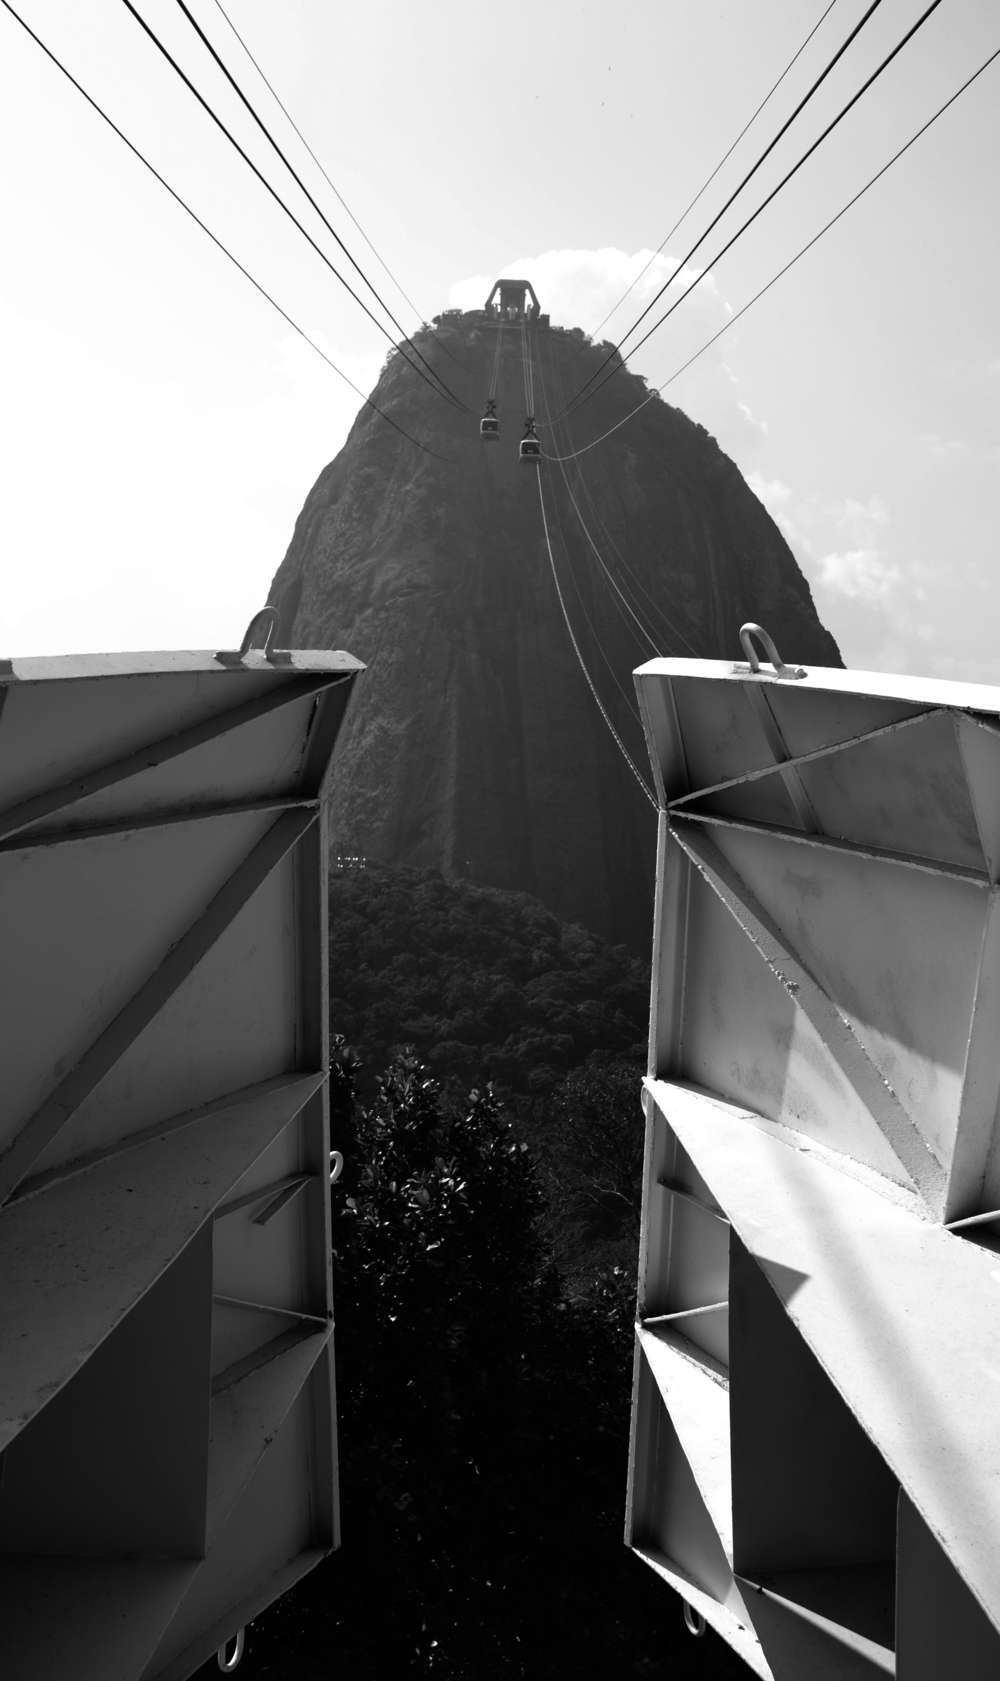 Sugarloaf at Copacabana